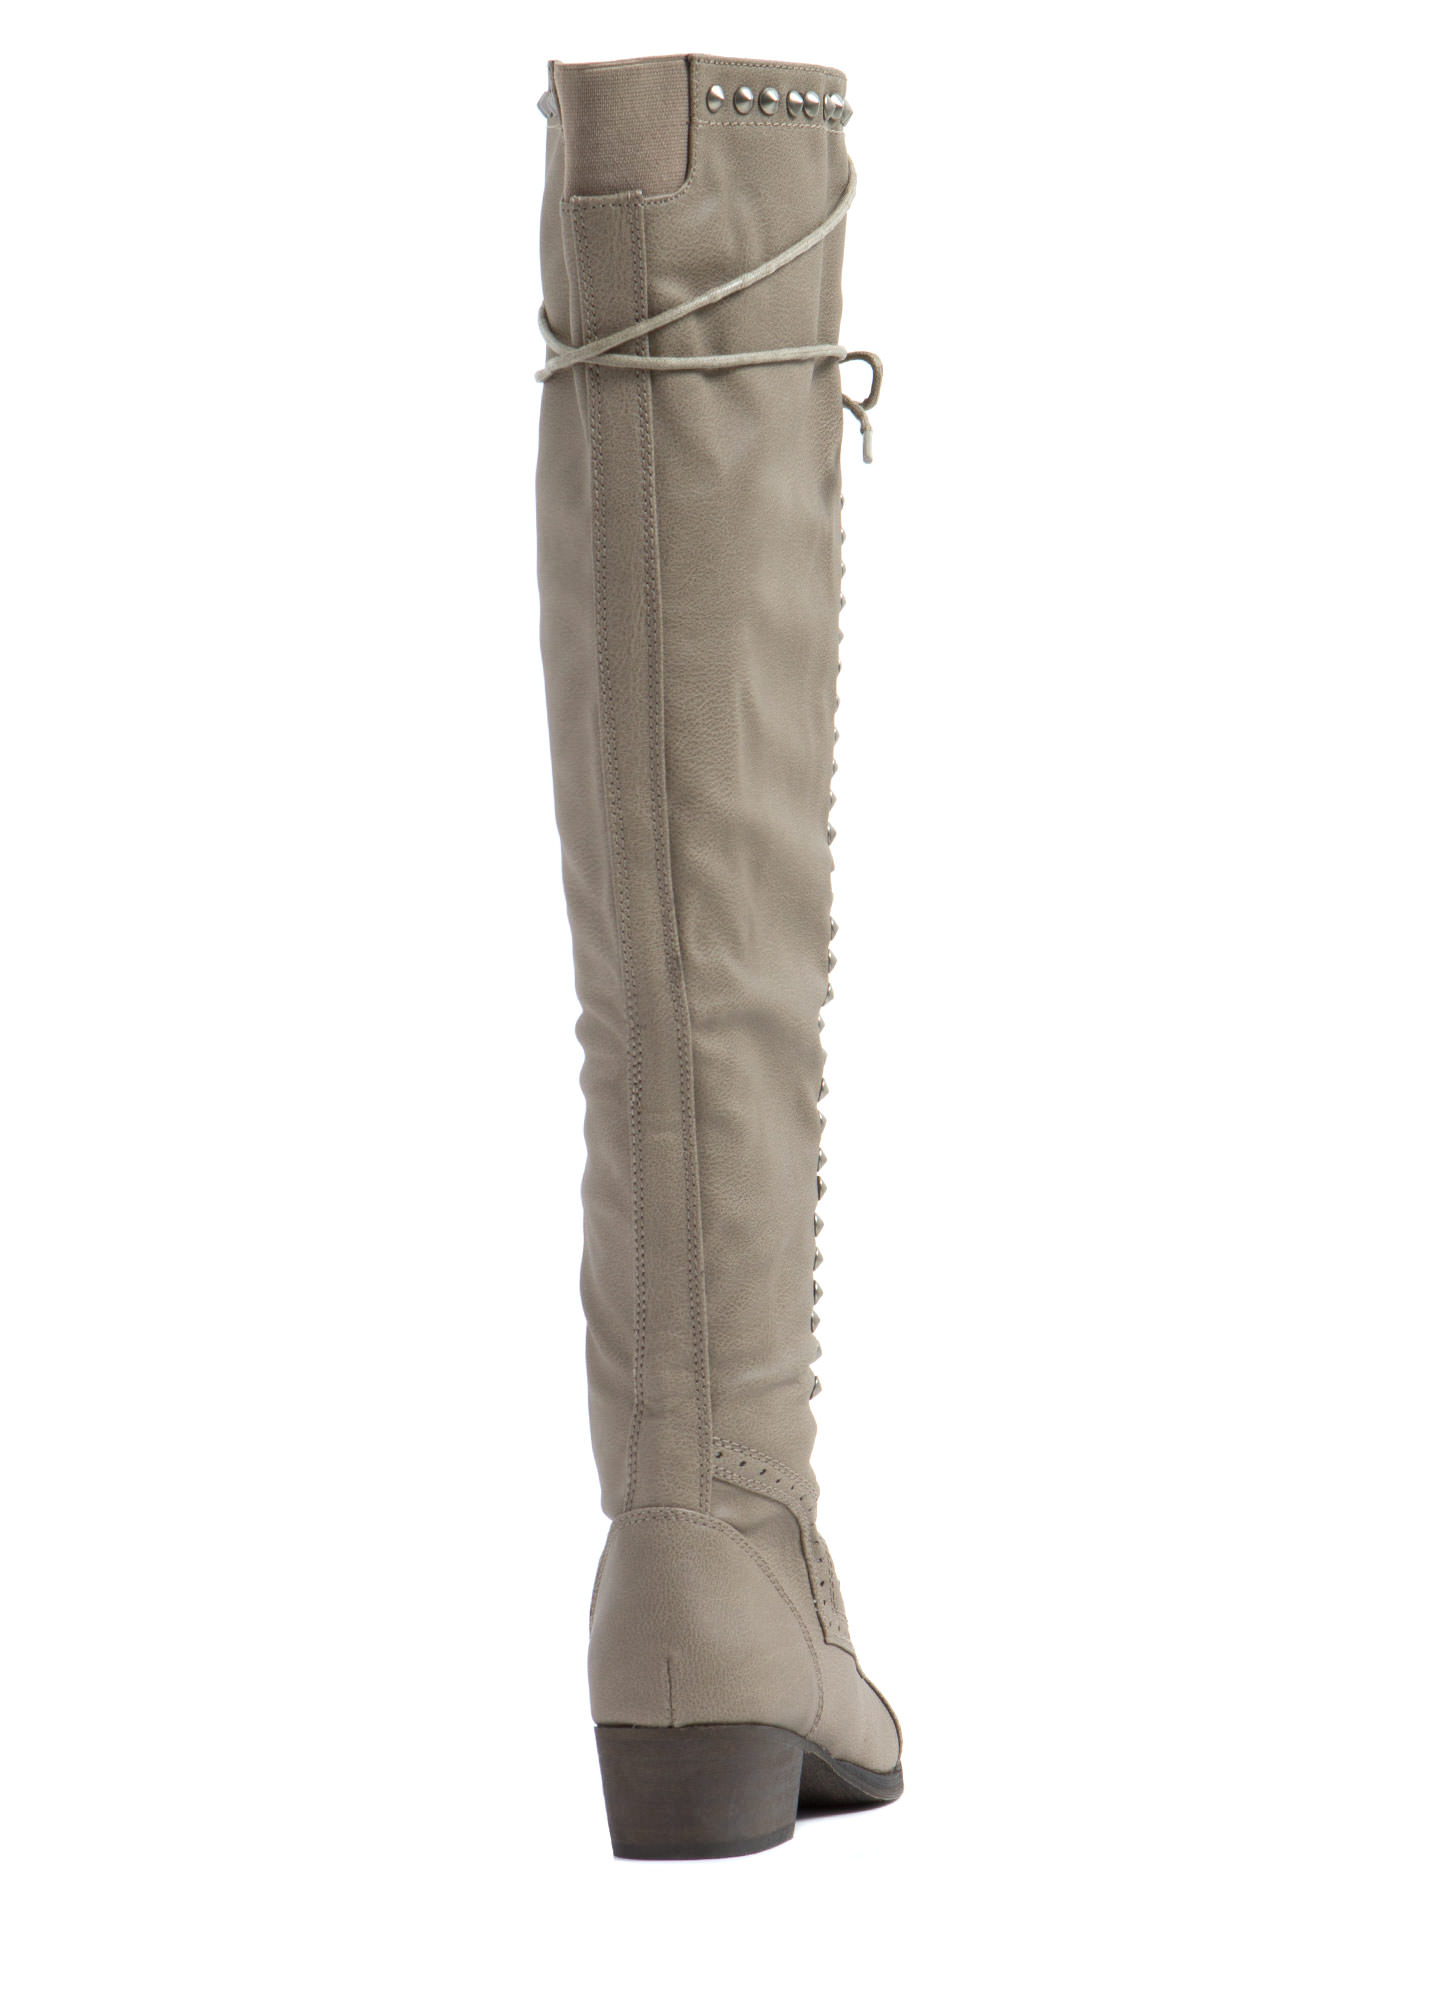 Take It Higher Studded Lace Up Boots BEIGE